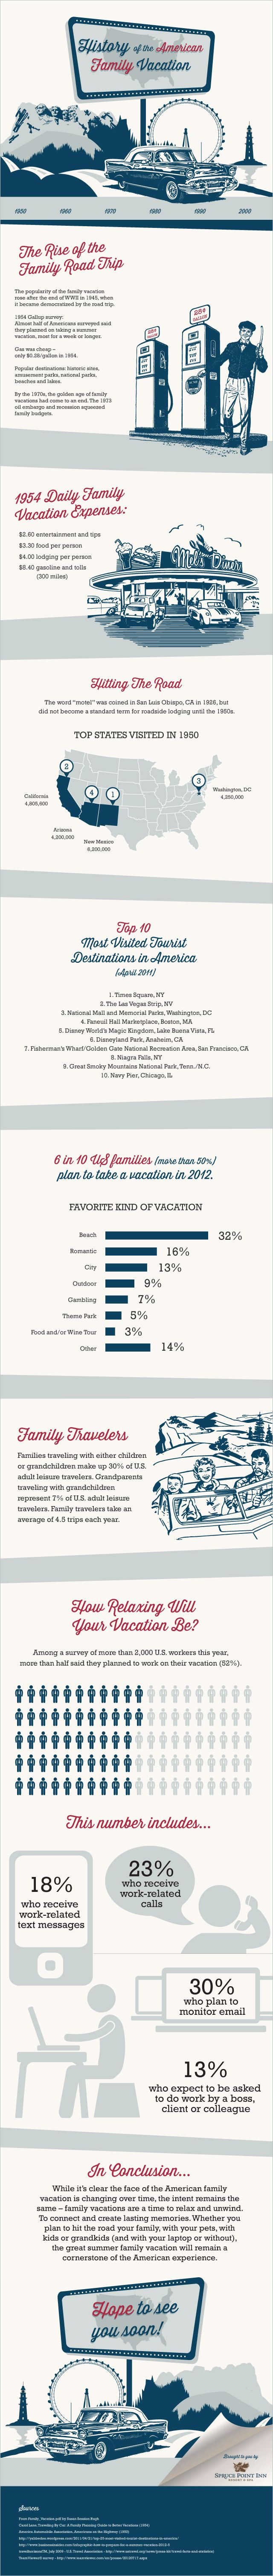 History of the American Family Vacation